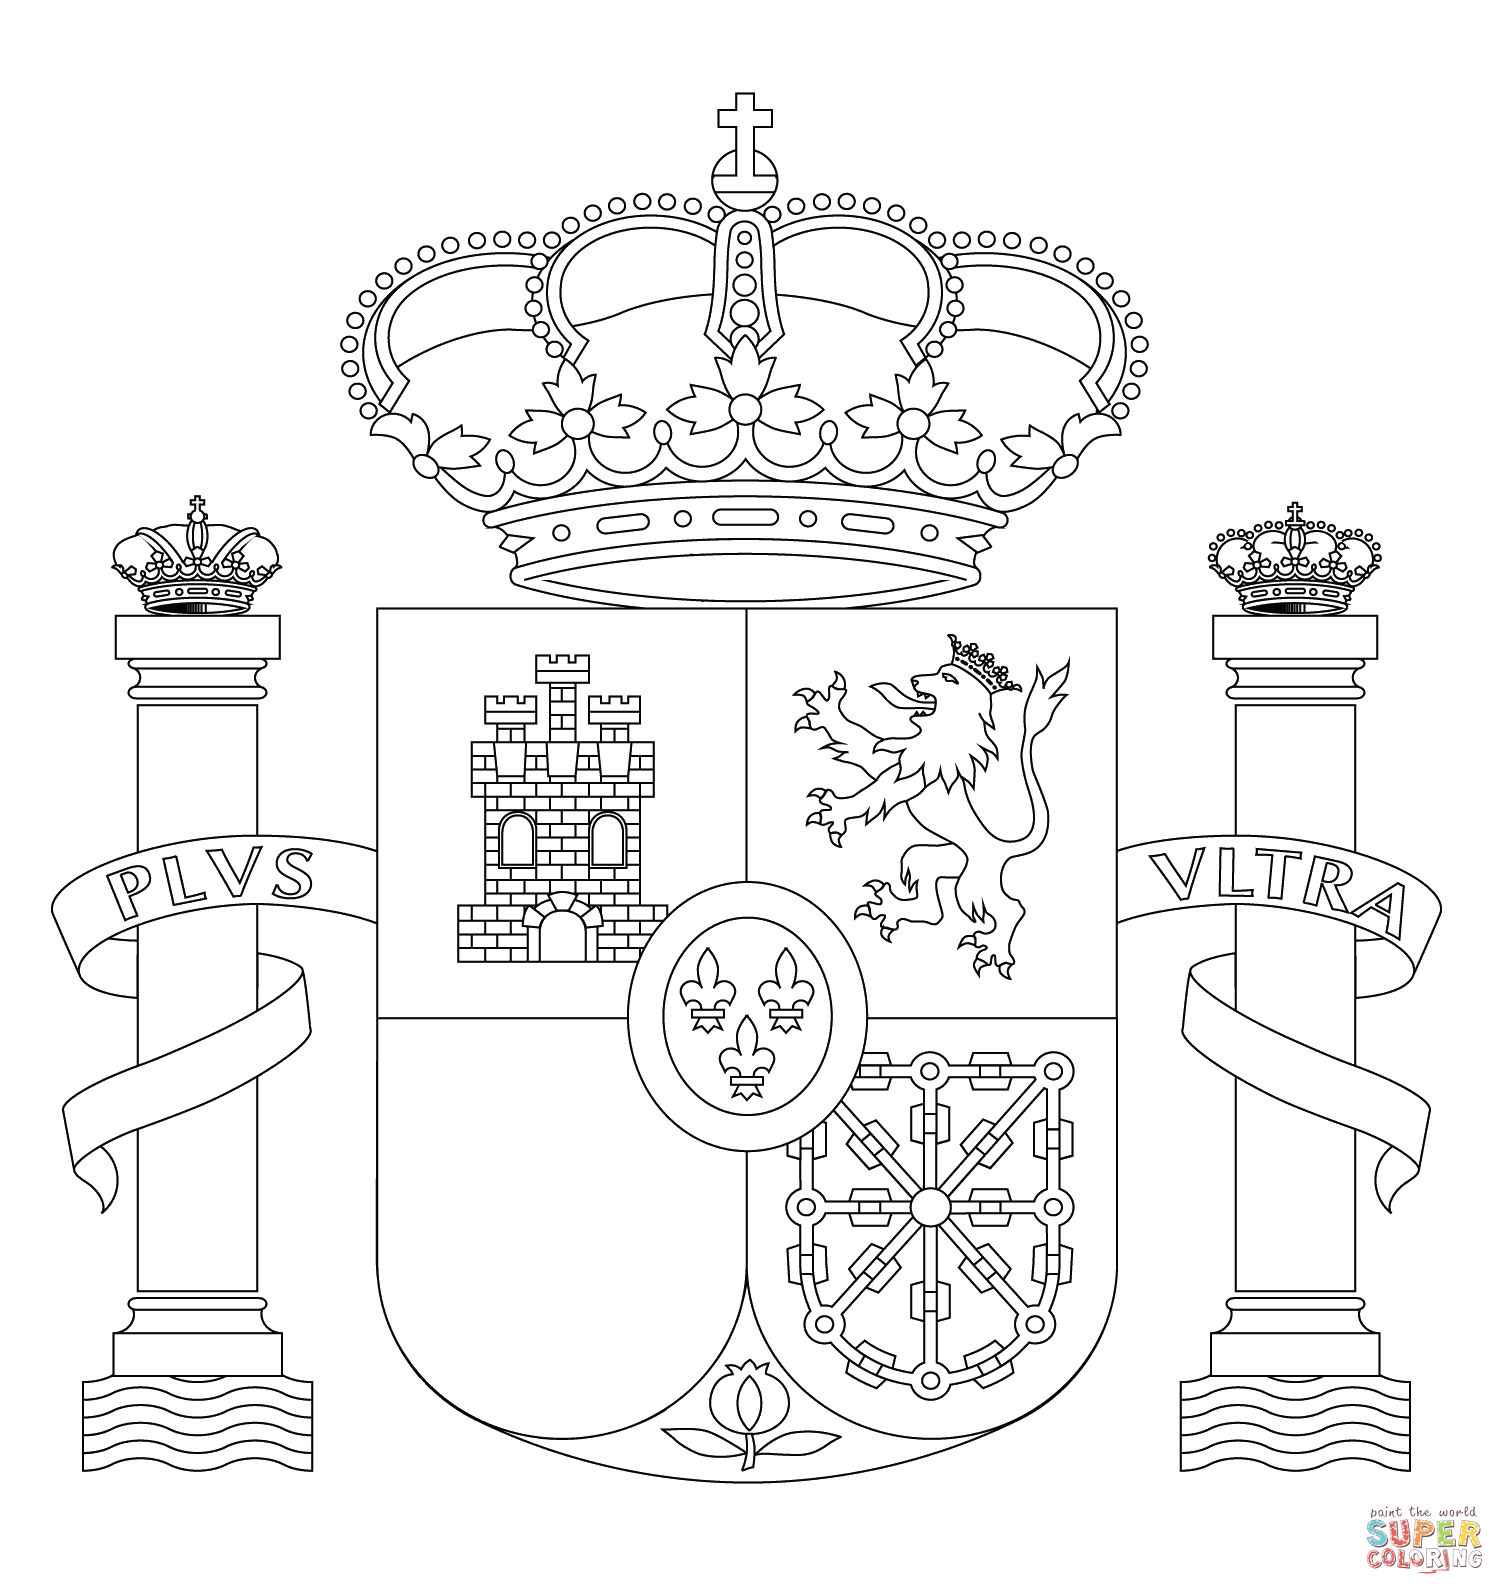 Kids Coloring Page For Spain